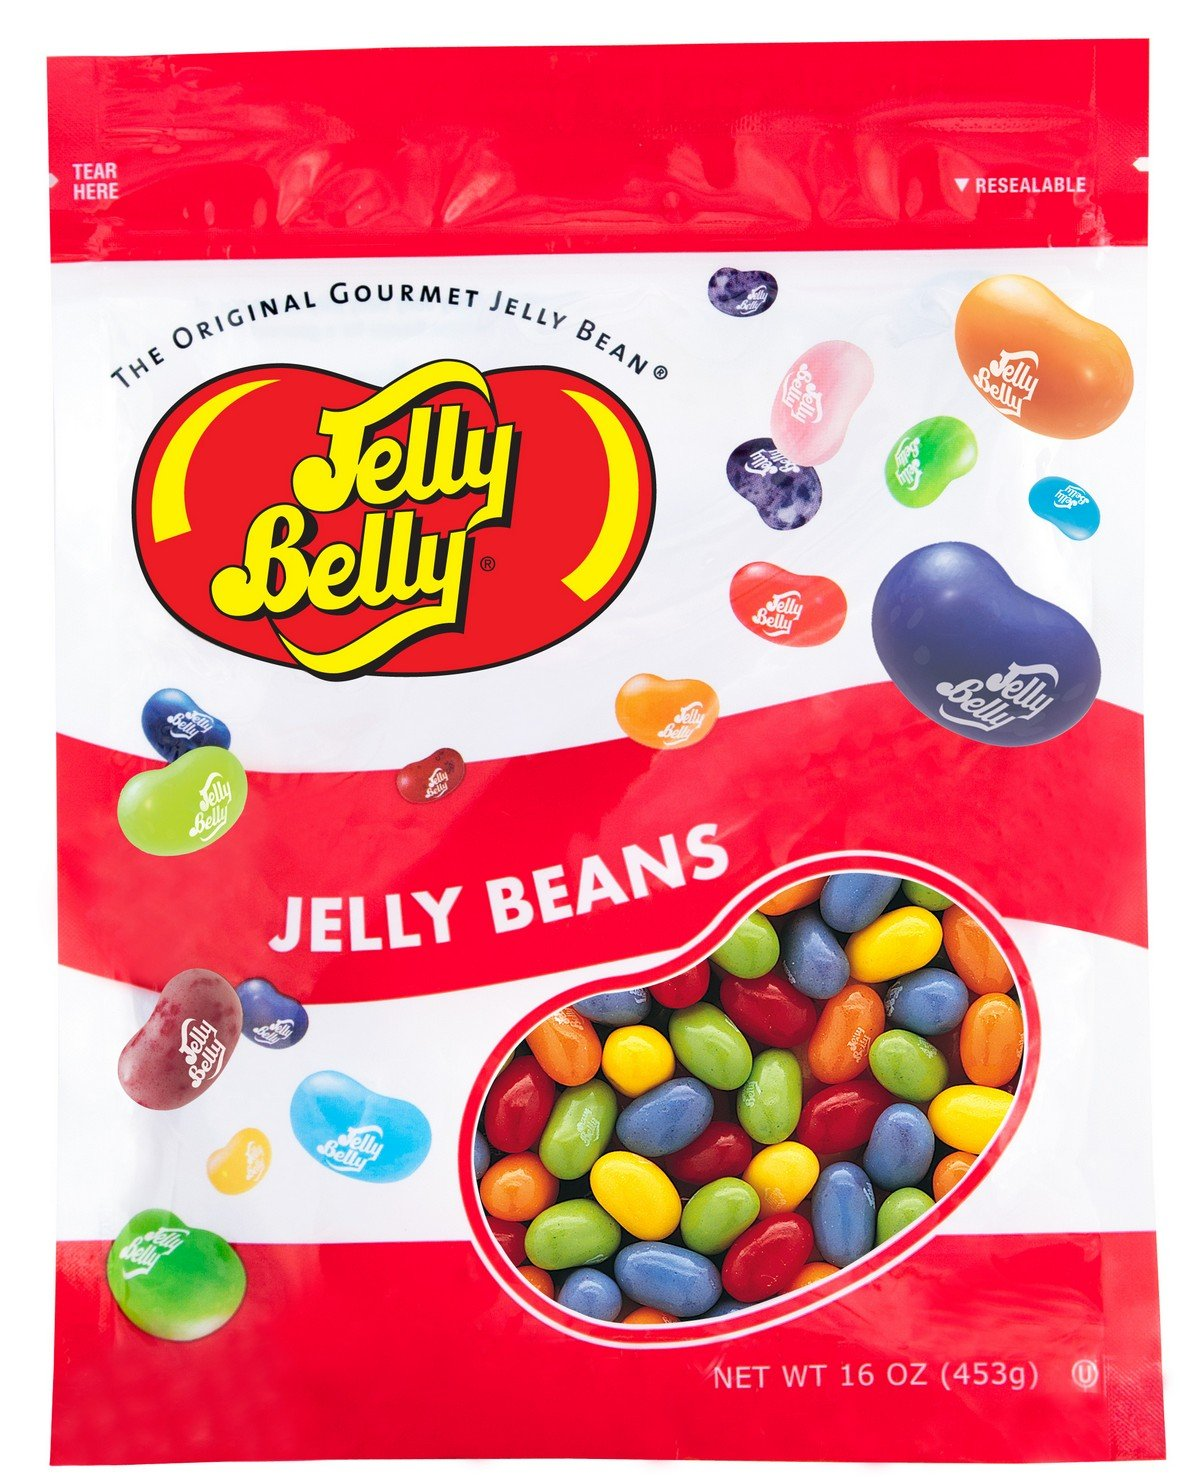 Jelly Belly Sours Mix 5 Flavors Jelly Beans - 1 Pound (16 Ounces) Resealable Bag - Genuine, Official, Straight from the Source